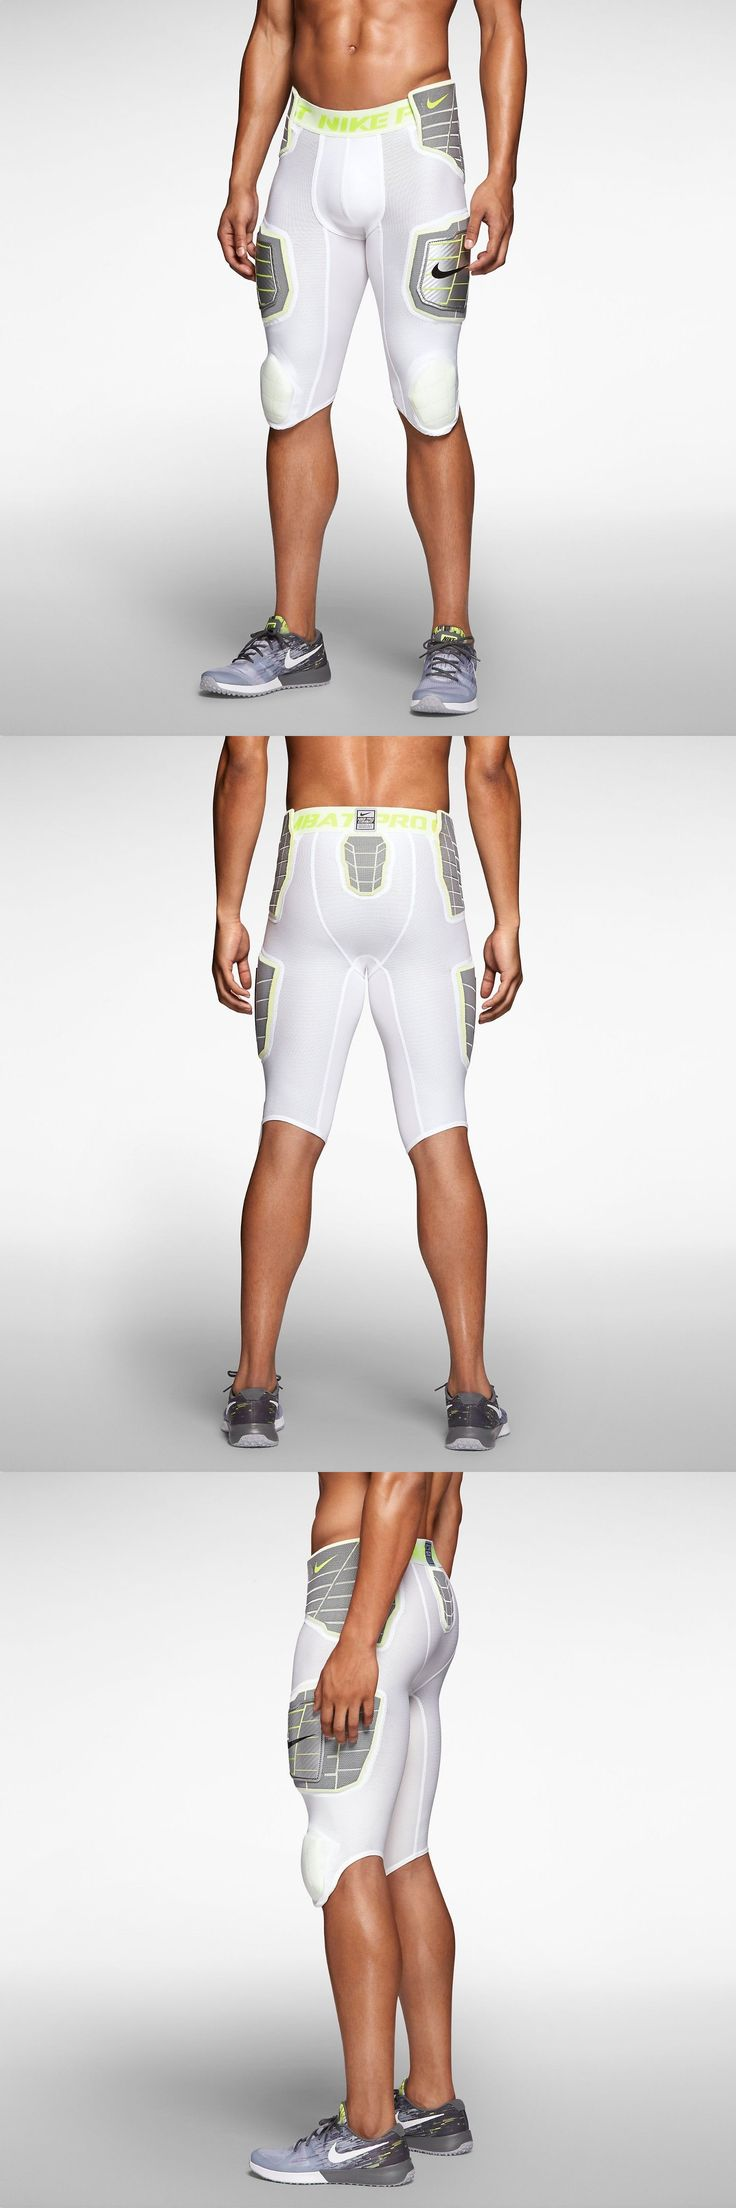 Protective Gear 21224: Nike Pro Combat 3.0 Hyperstrong 3 4 Compress Football 584387-101 White Men Pants -> BUY IT NOW ONLY: $59.99 on eBay!